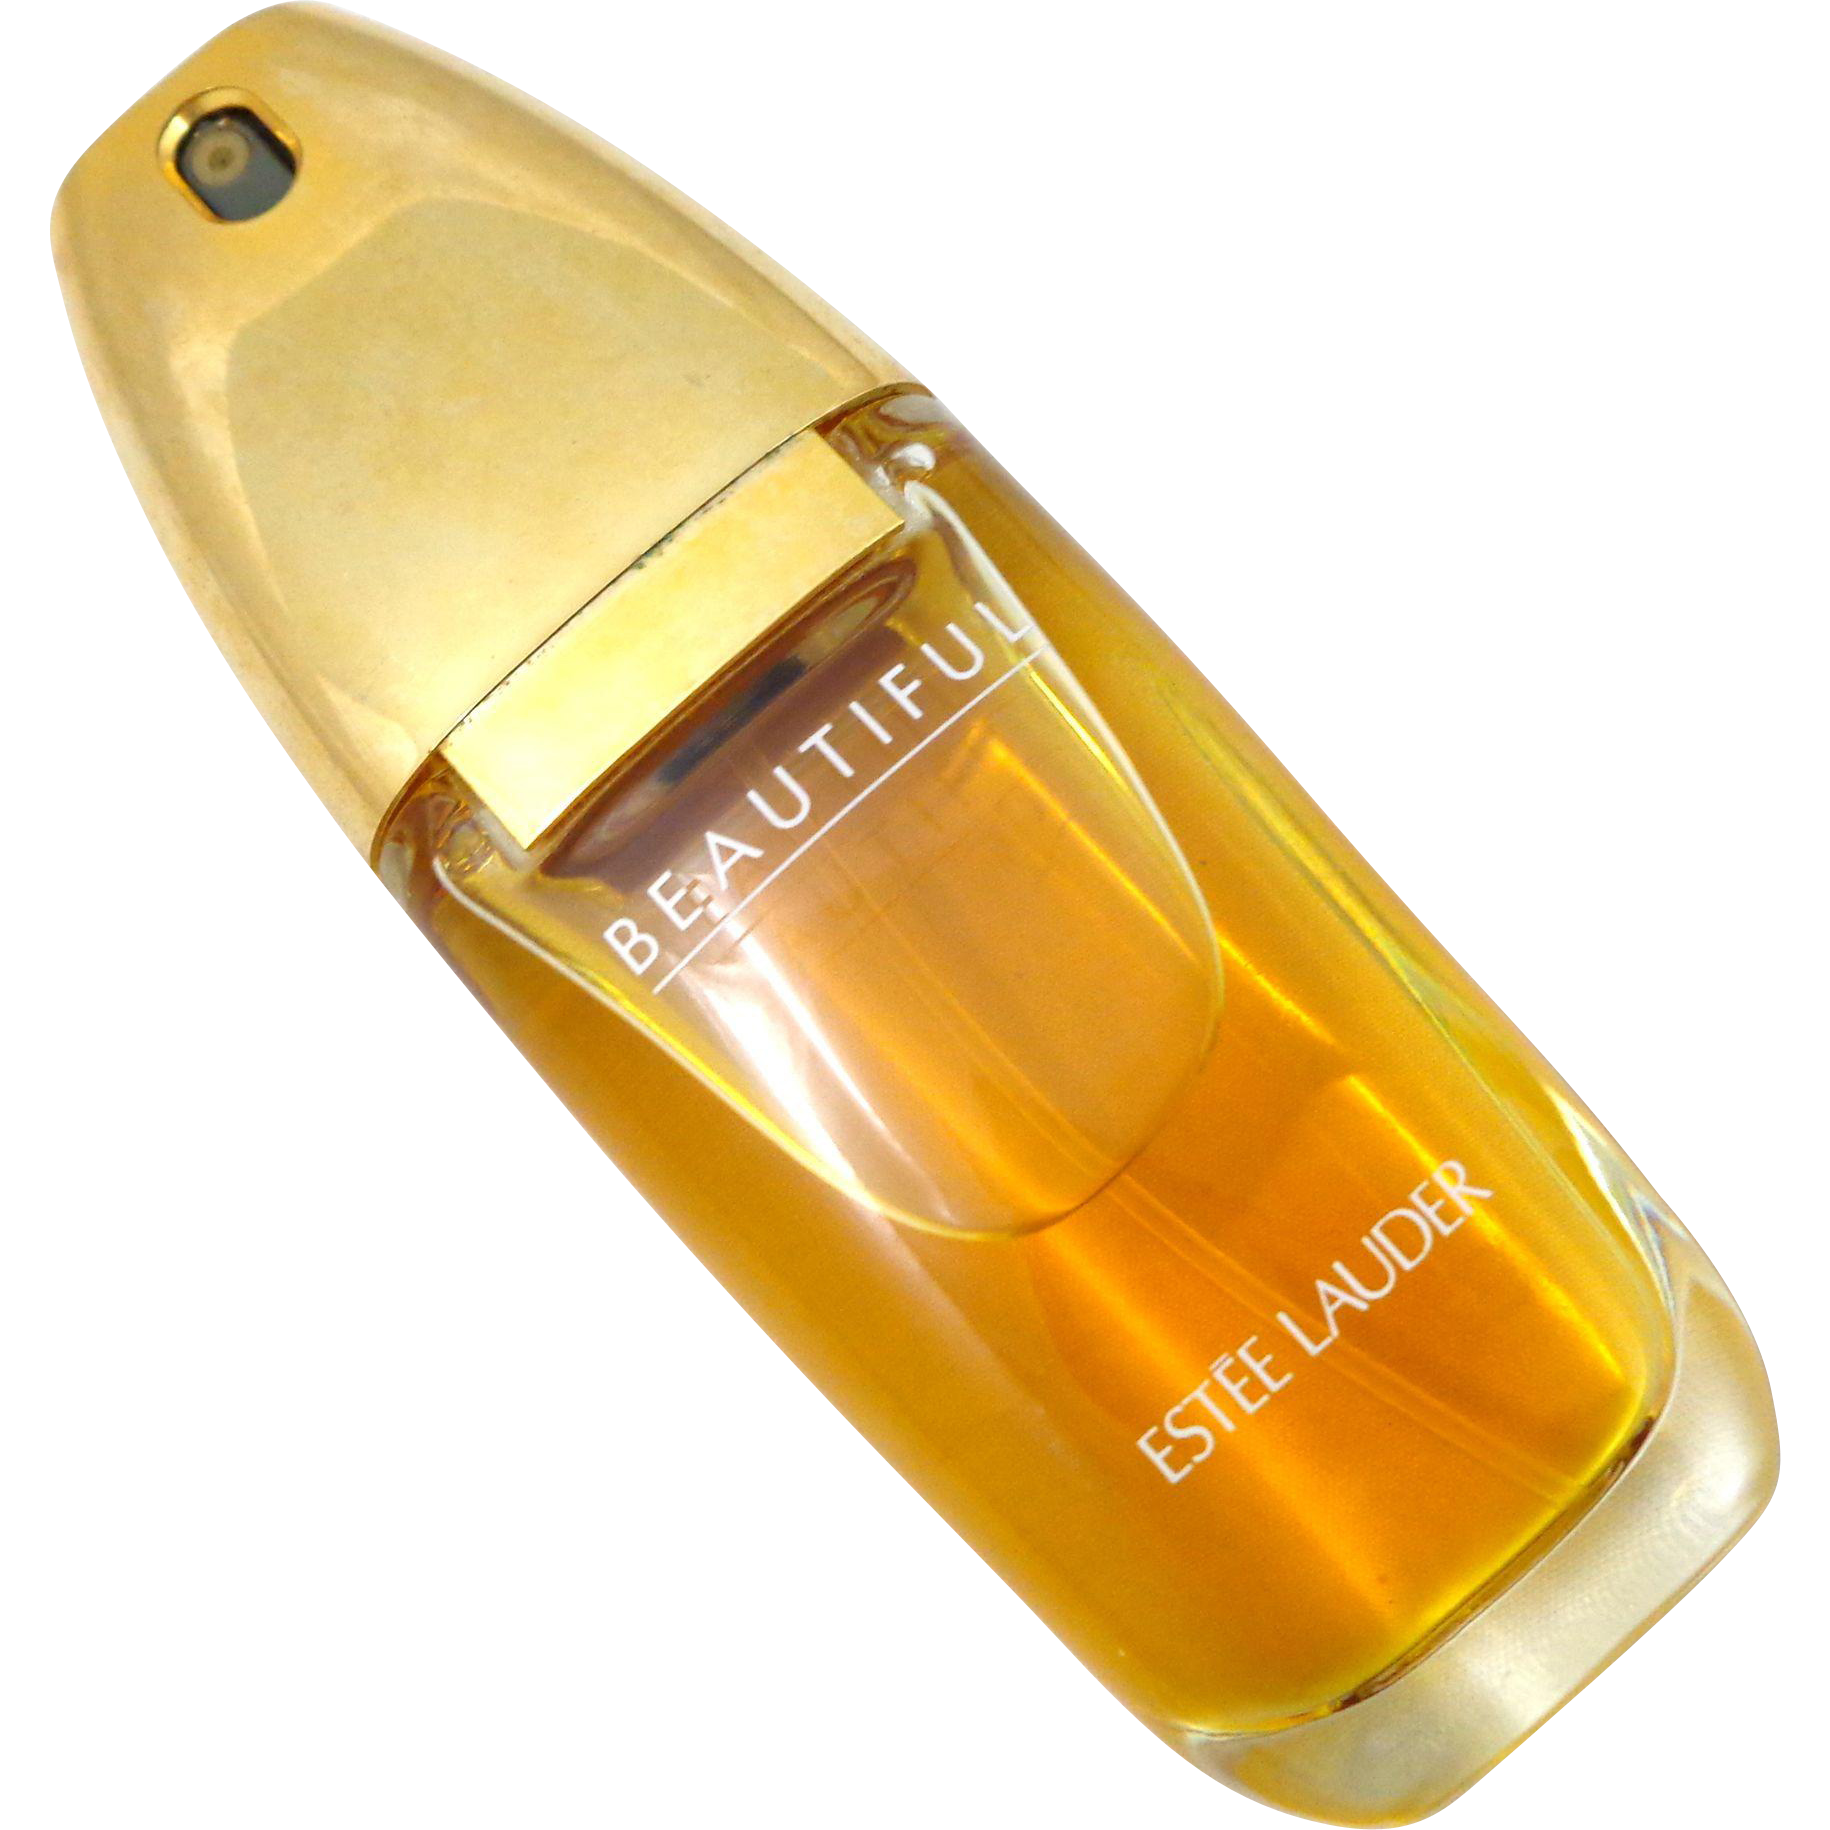 Estee Lauder BEAUTIFUL Perfume EDP 2.5 fl ozs